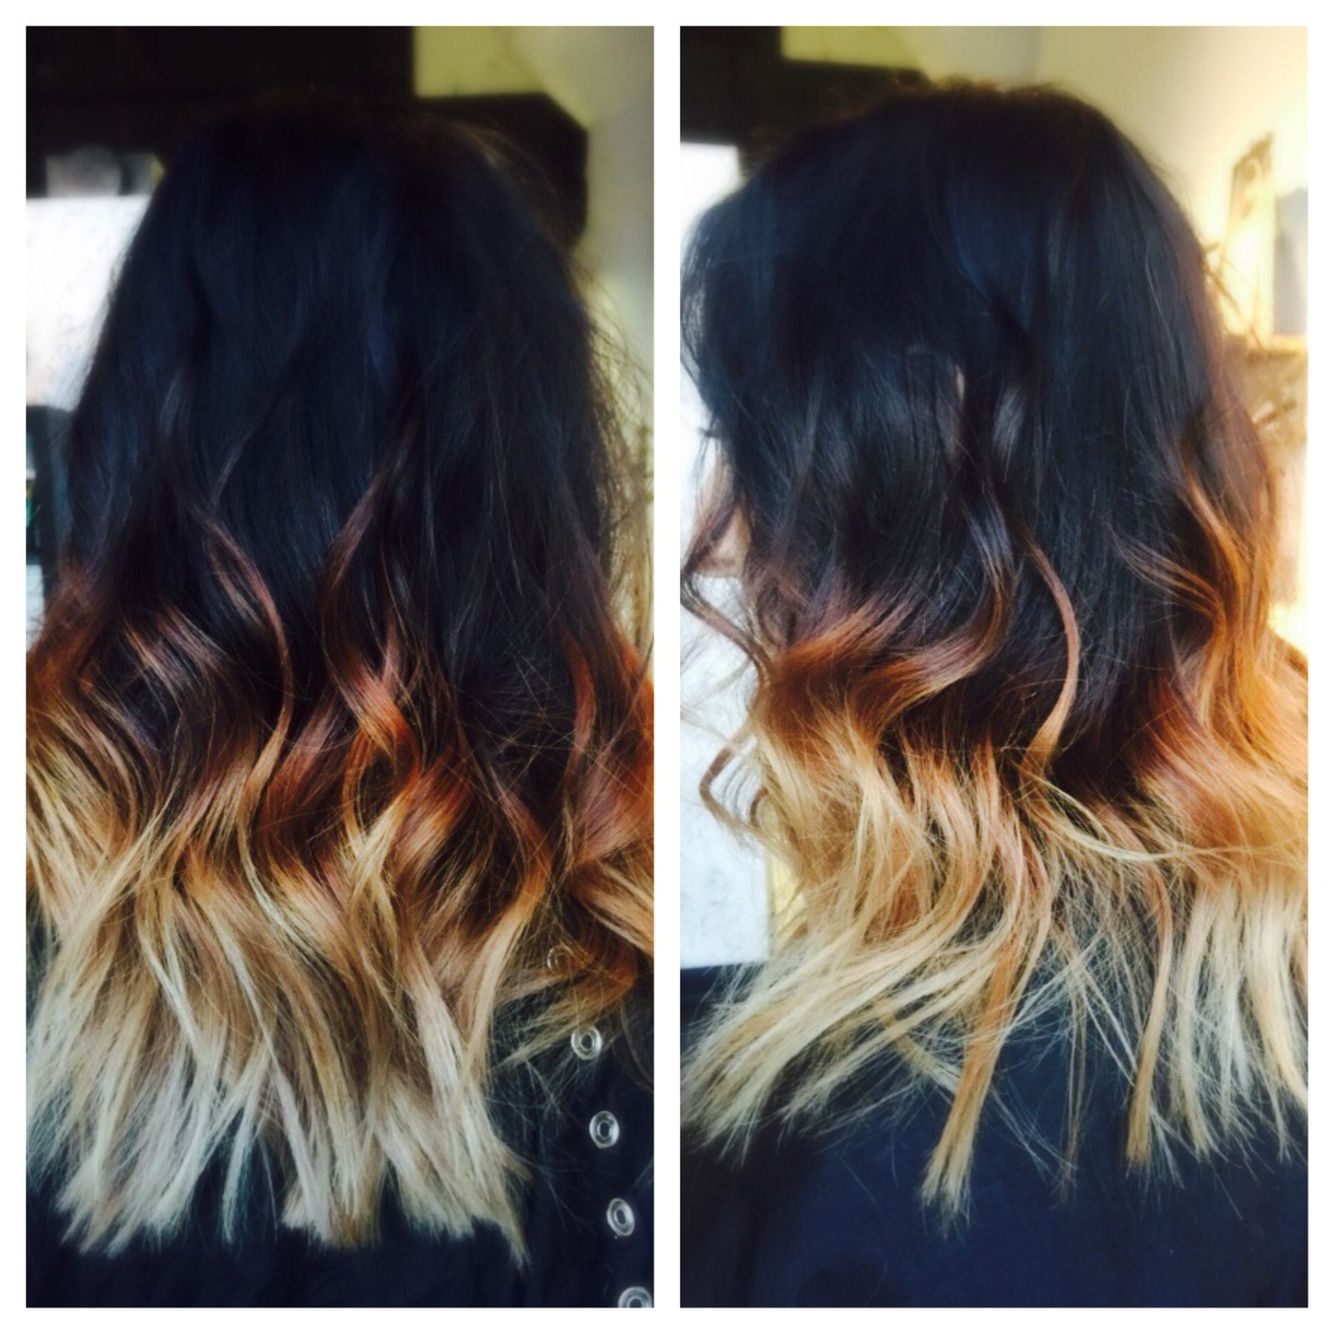 Darkest Brown To Blonde Balayage Ombr Hair Color Painting With